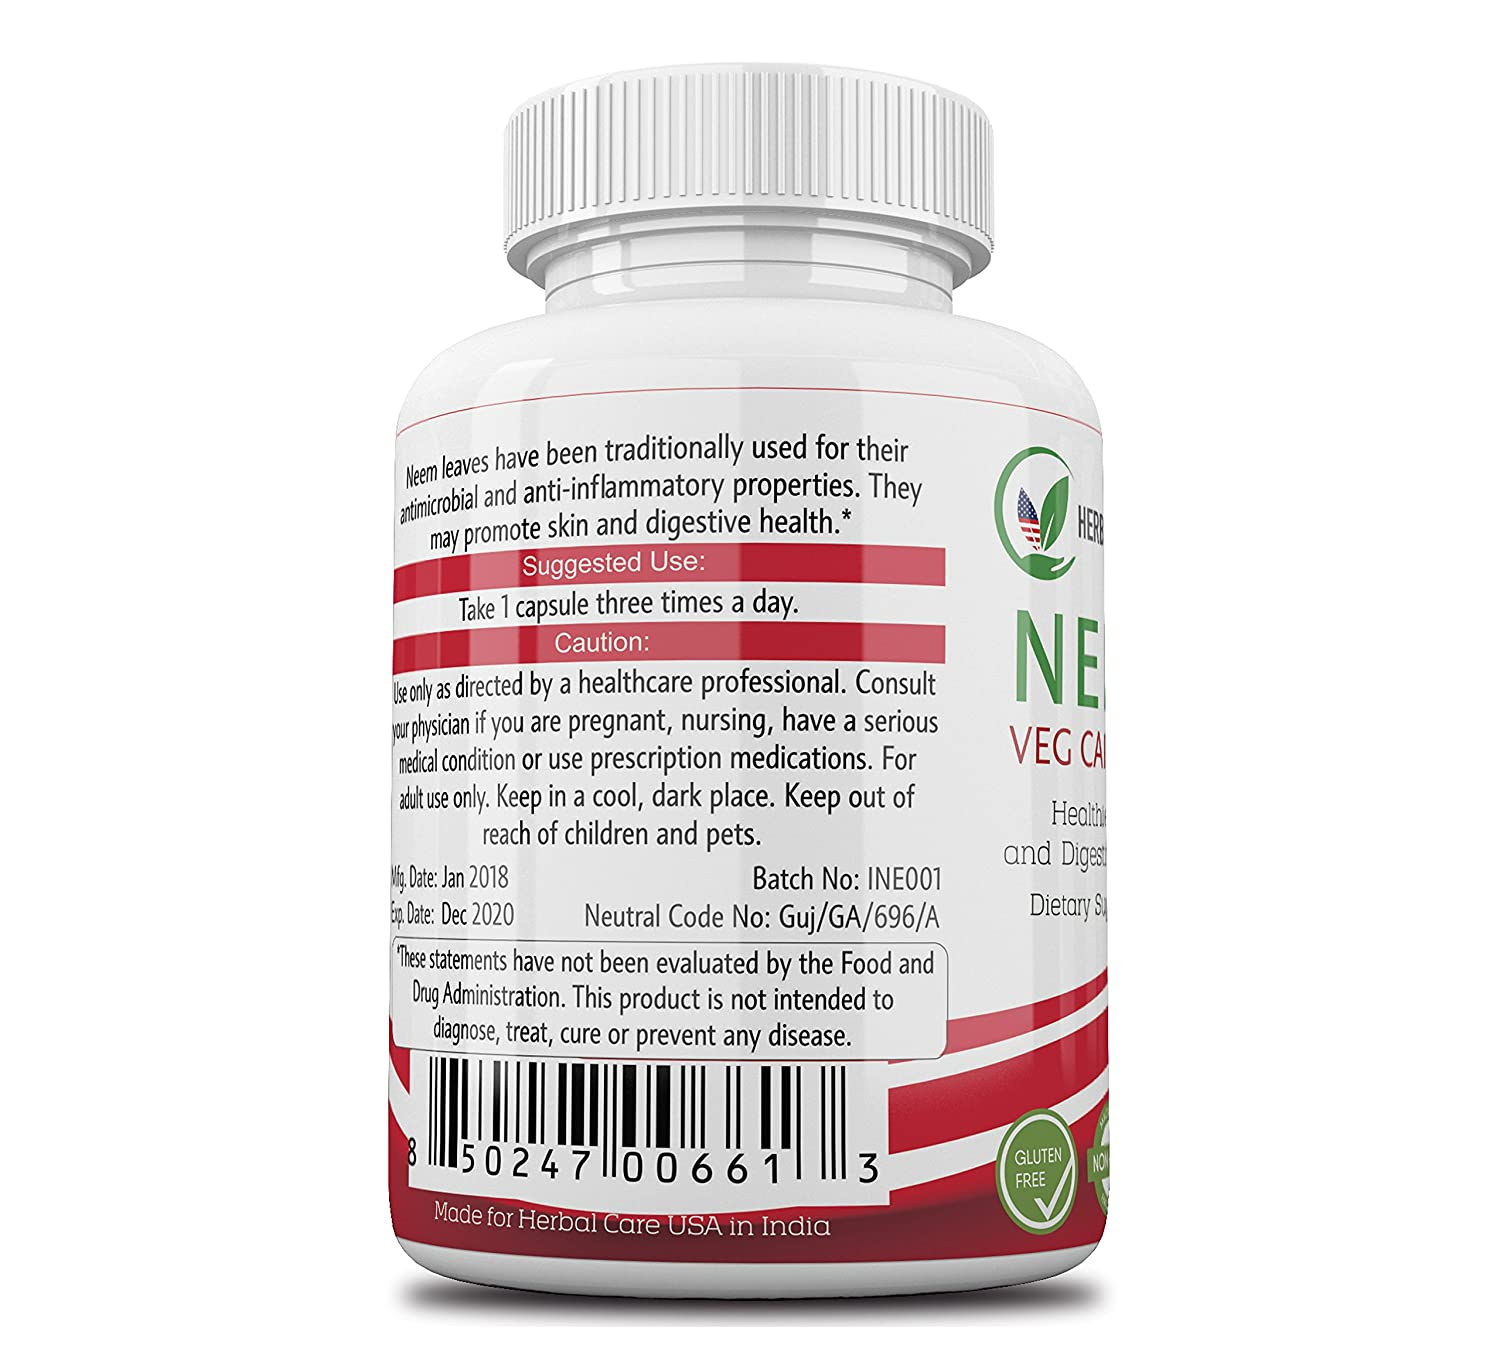 Amazon.com: Premium Neem by Herbal Care USA | Superfood to Assist with Healthier Skin, Digestive System, and Immune Support | Small, Easy to Swallow Vegan ...